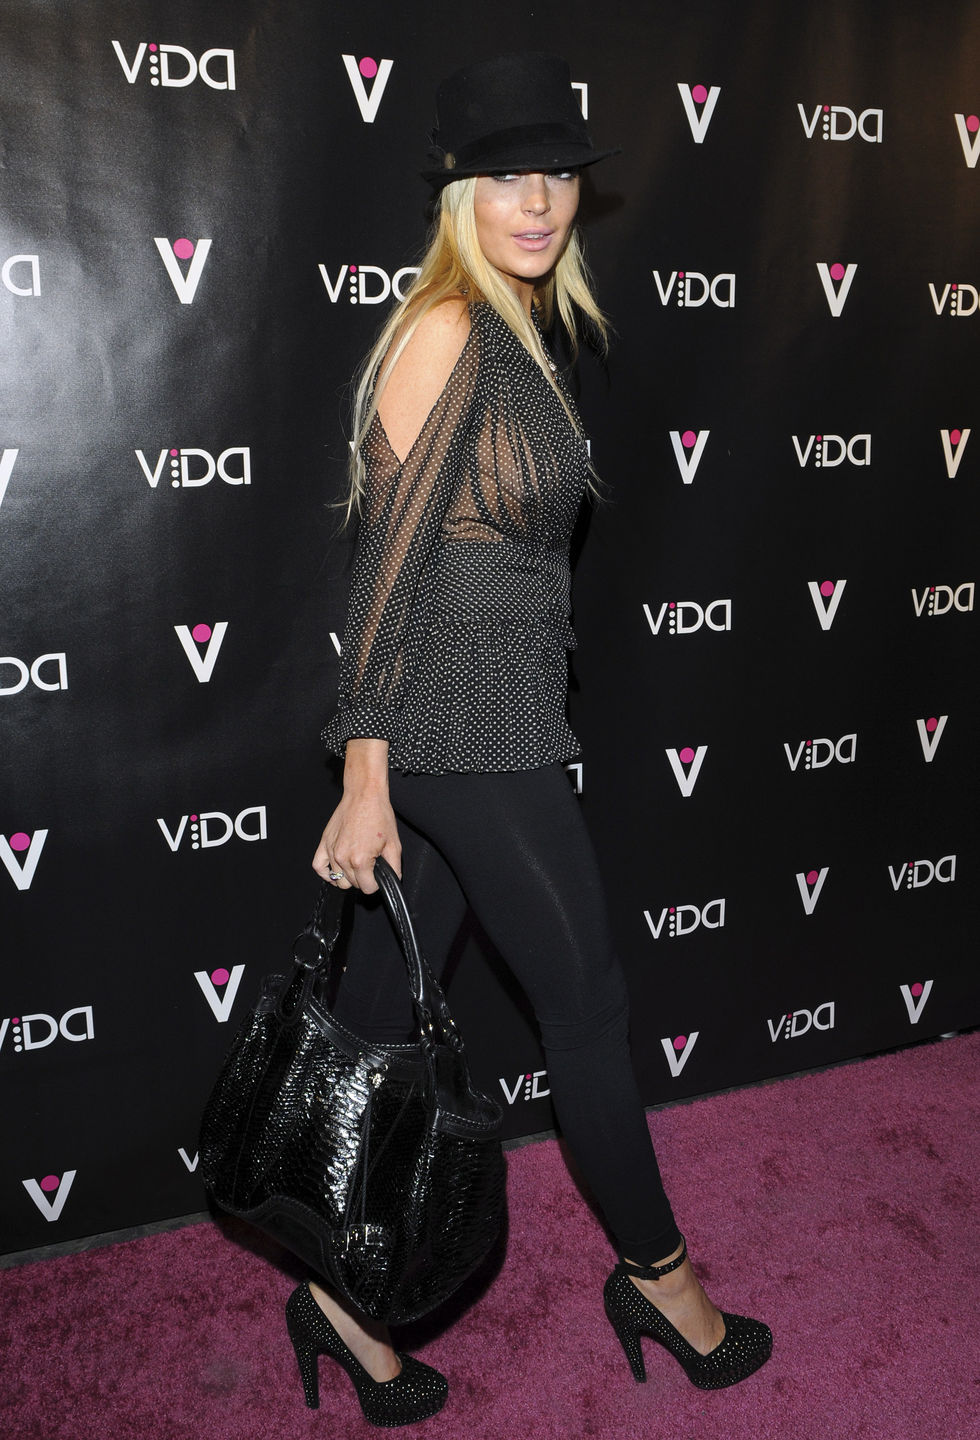 lindsay-lohan-braless-cleavage-at-vida-launch-event-01